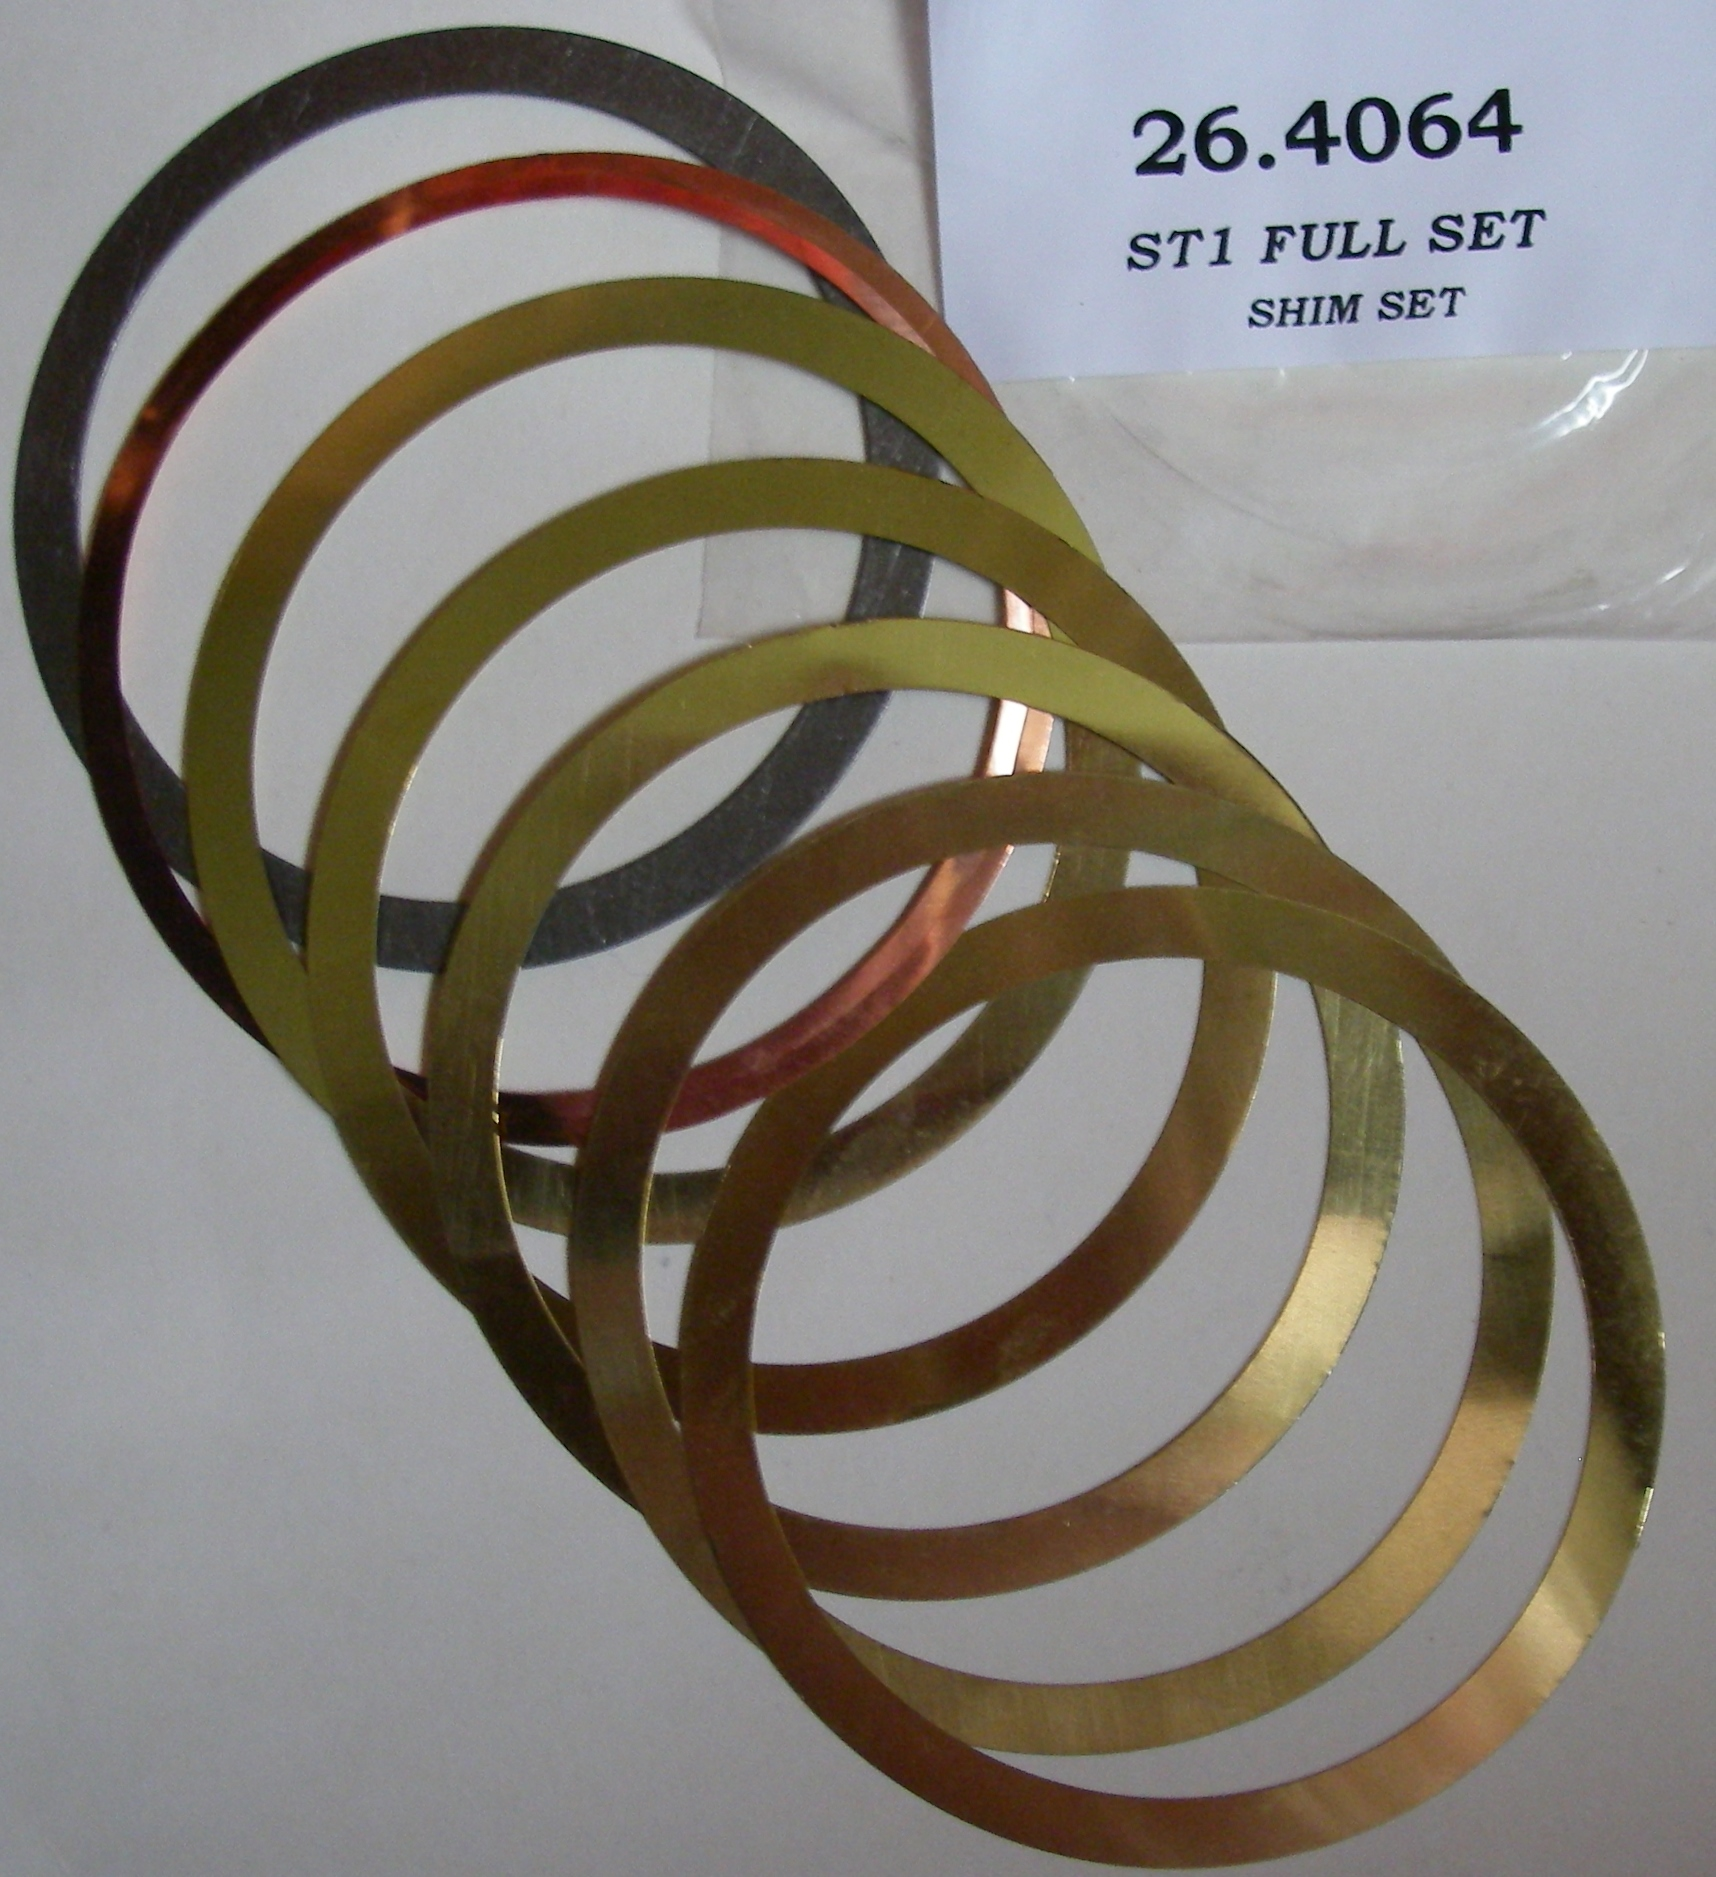 <b>Lister ST Engine Shim Set</b>